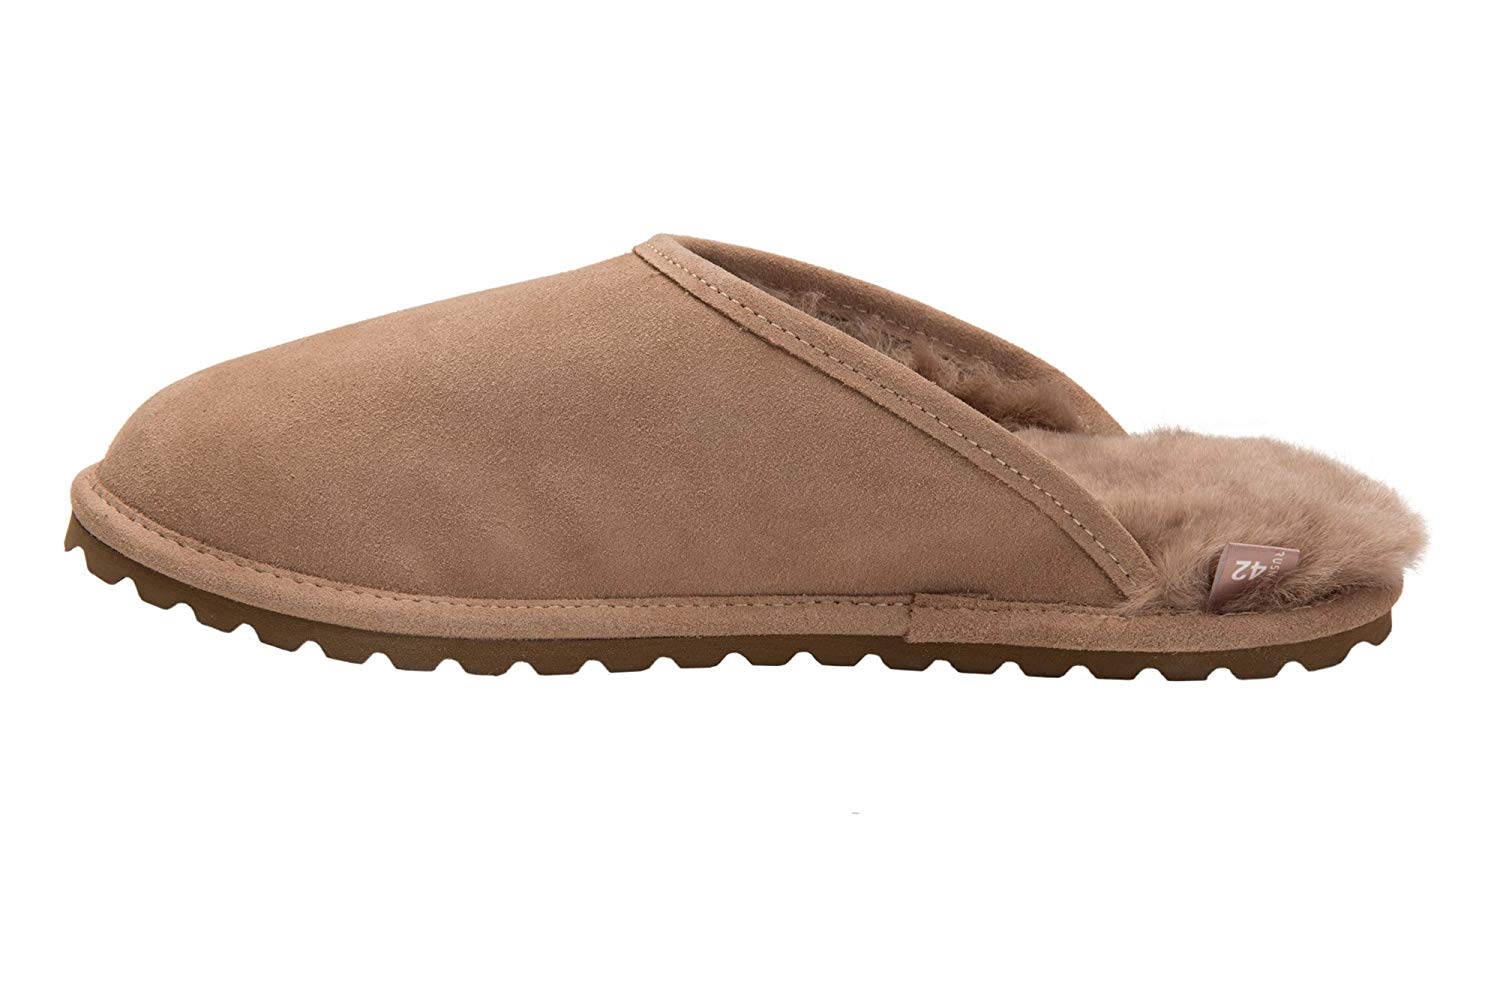 7d94e51bb25 Get Quotations · Rusnak Mens Sheepskin Leather Mule Slippers House Shoes  with Warm Wool Lining M68P